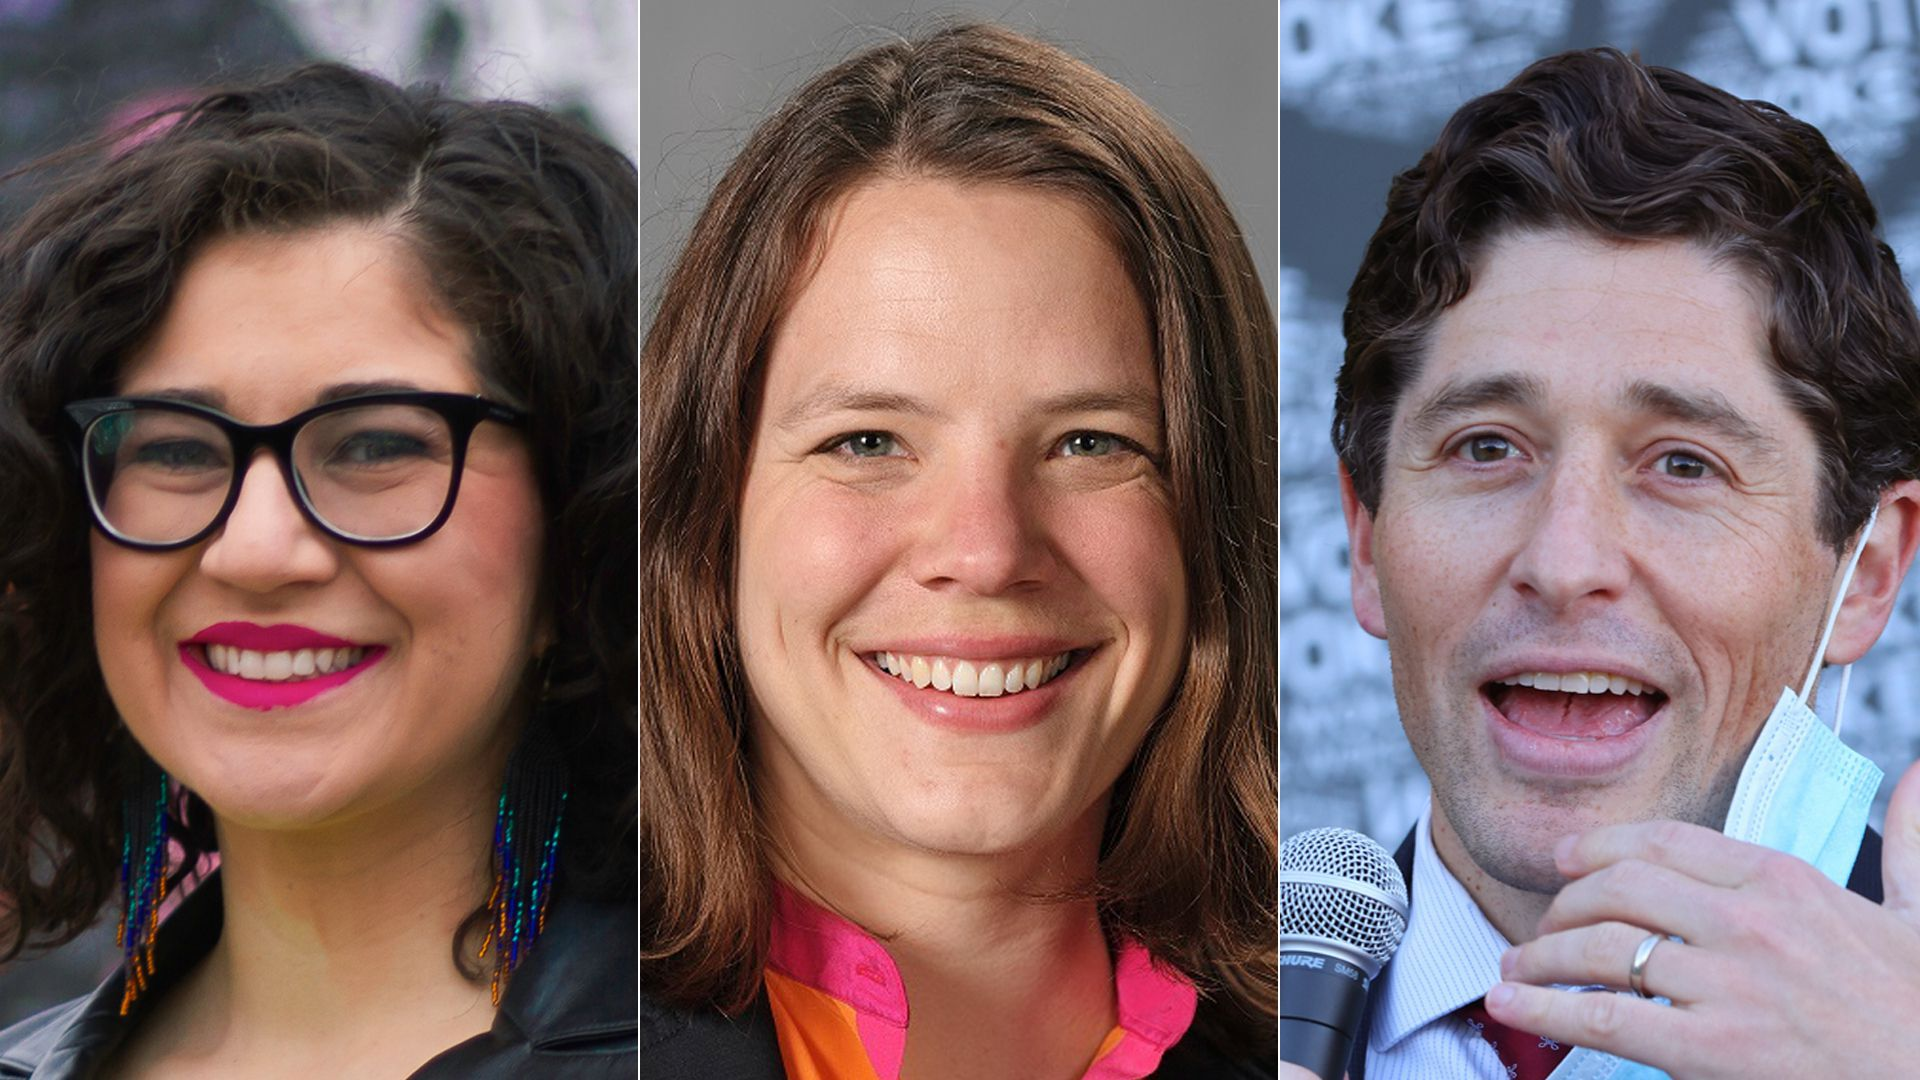 Sheila Nezhad (left) and Kate Knuth (center) are challenging Minneapolis Mayor Jacob Frey. Photos courtesy of Nezhad and Knuth campaigns; Adam Bettcher/Getty Images